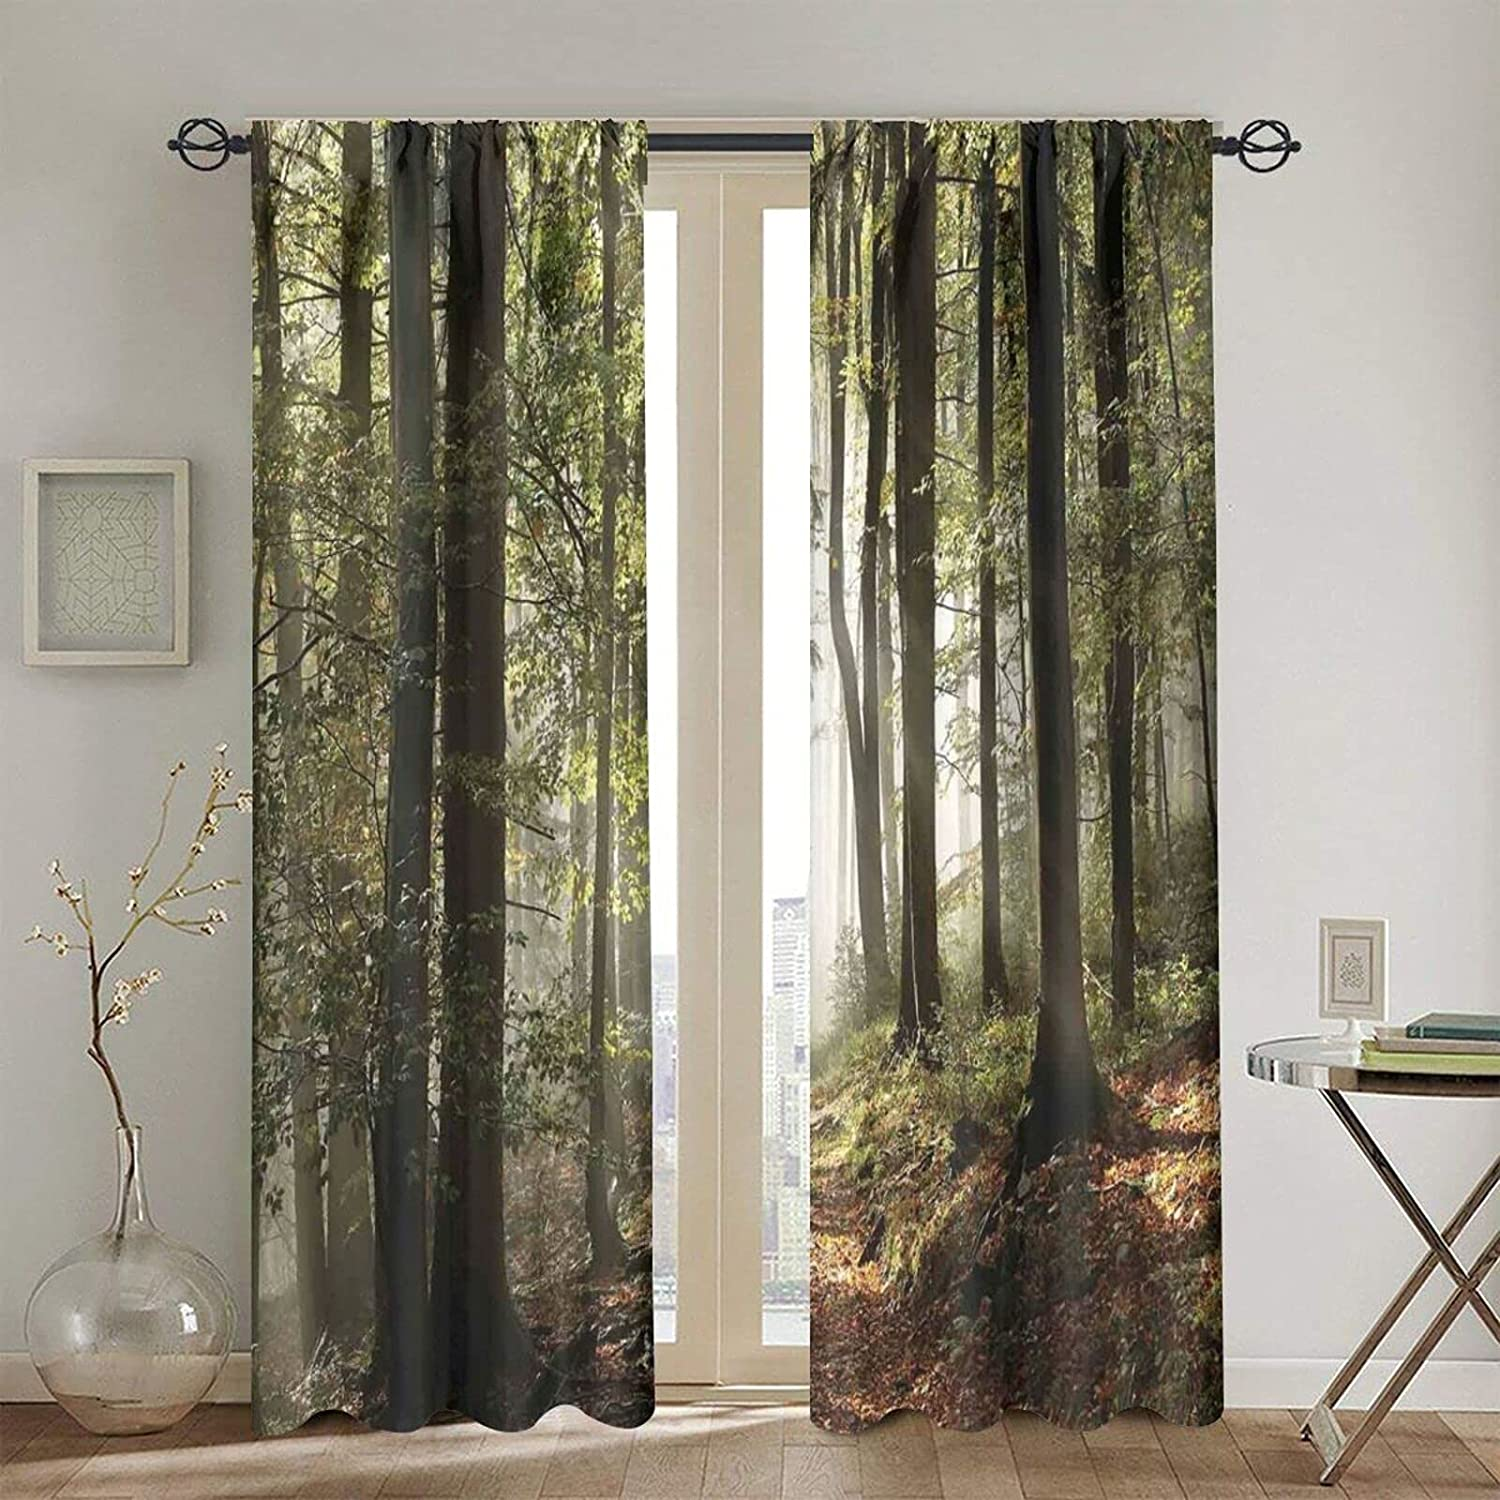 Rod Pocket Blackout Special price Curtains Thermal Insulated Max 64% OFF Au Window Curtain